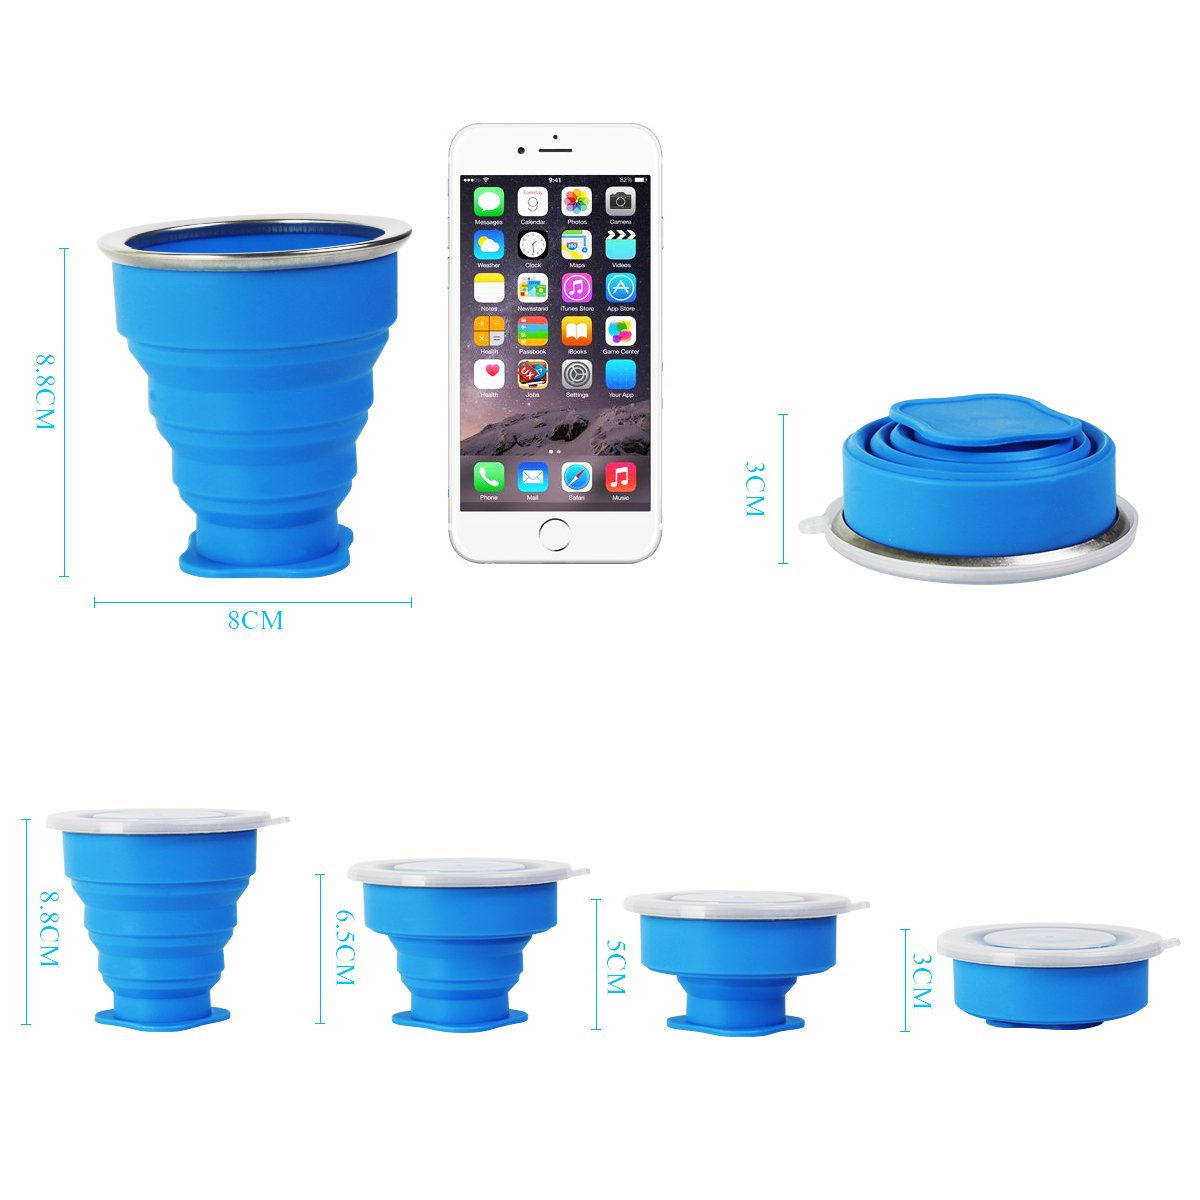 Blue and Pink Eastshining Collapsible Travel Cup 2 pcs Portable Folding Camping Mug Space Saving BPA Free Silicone Retractable Cup for Traveling Hiking Camping Picnic